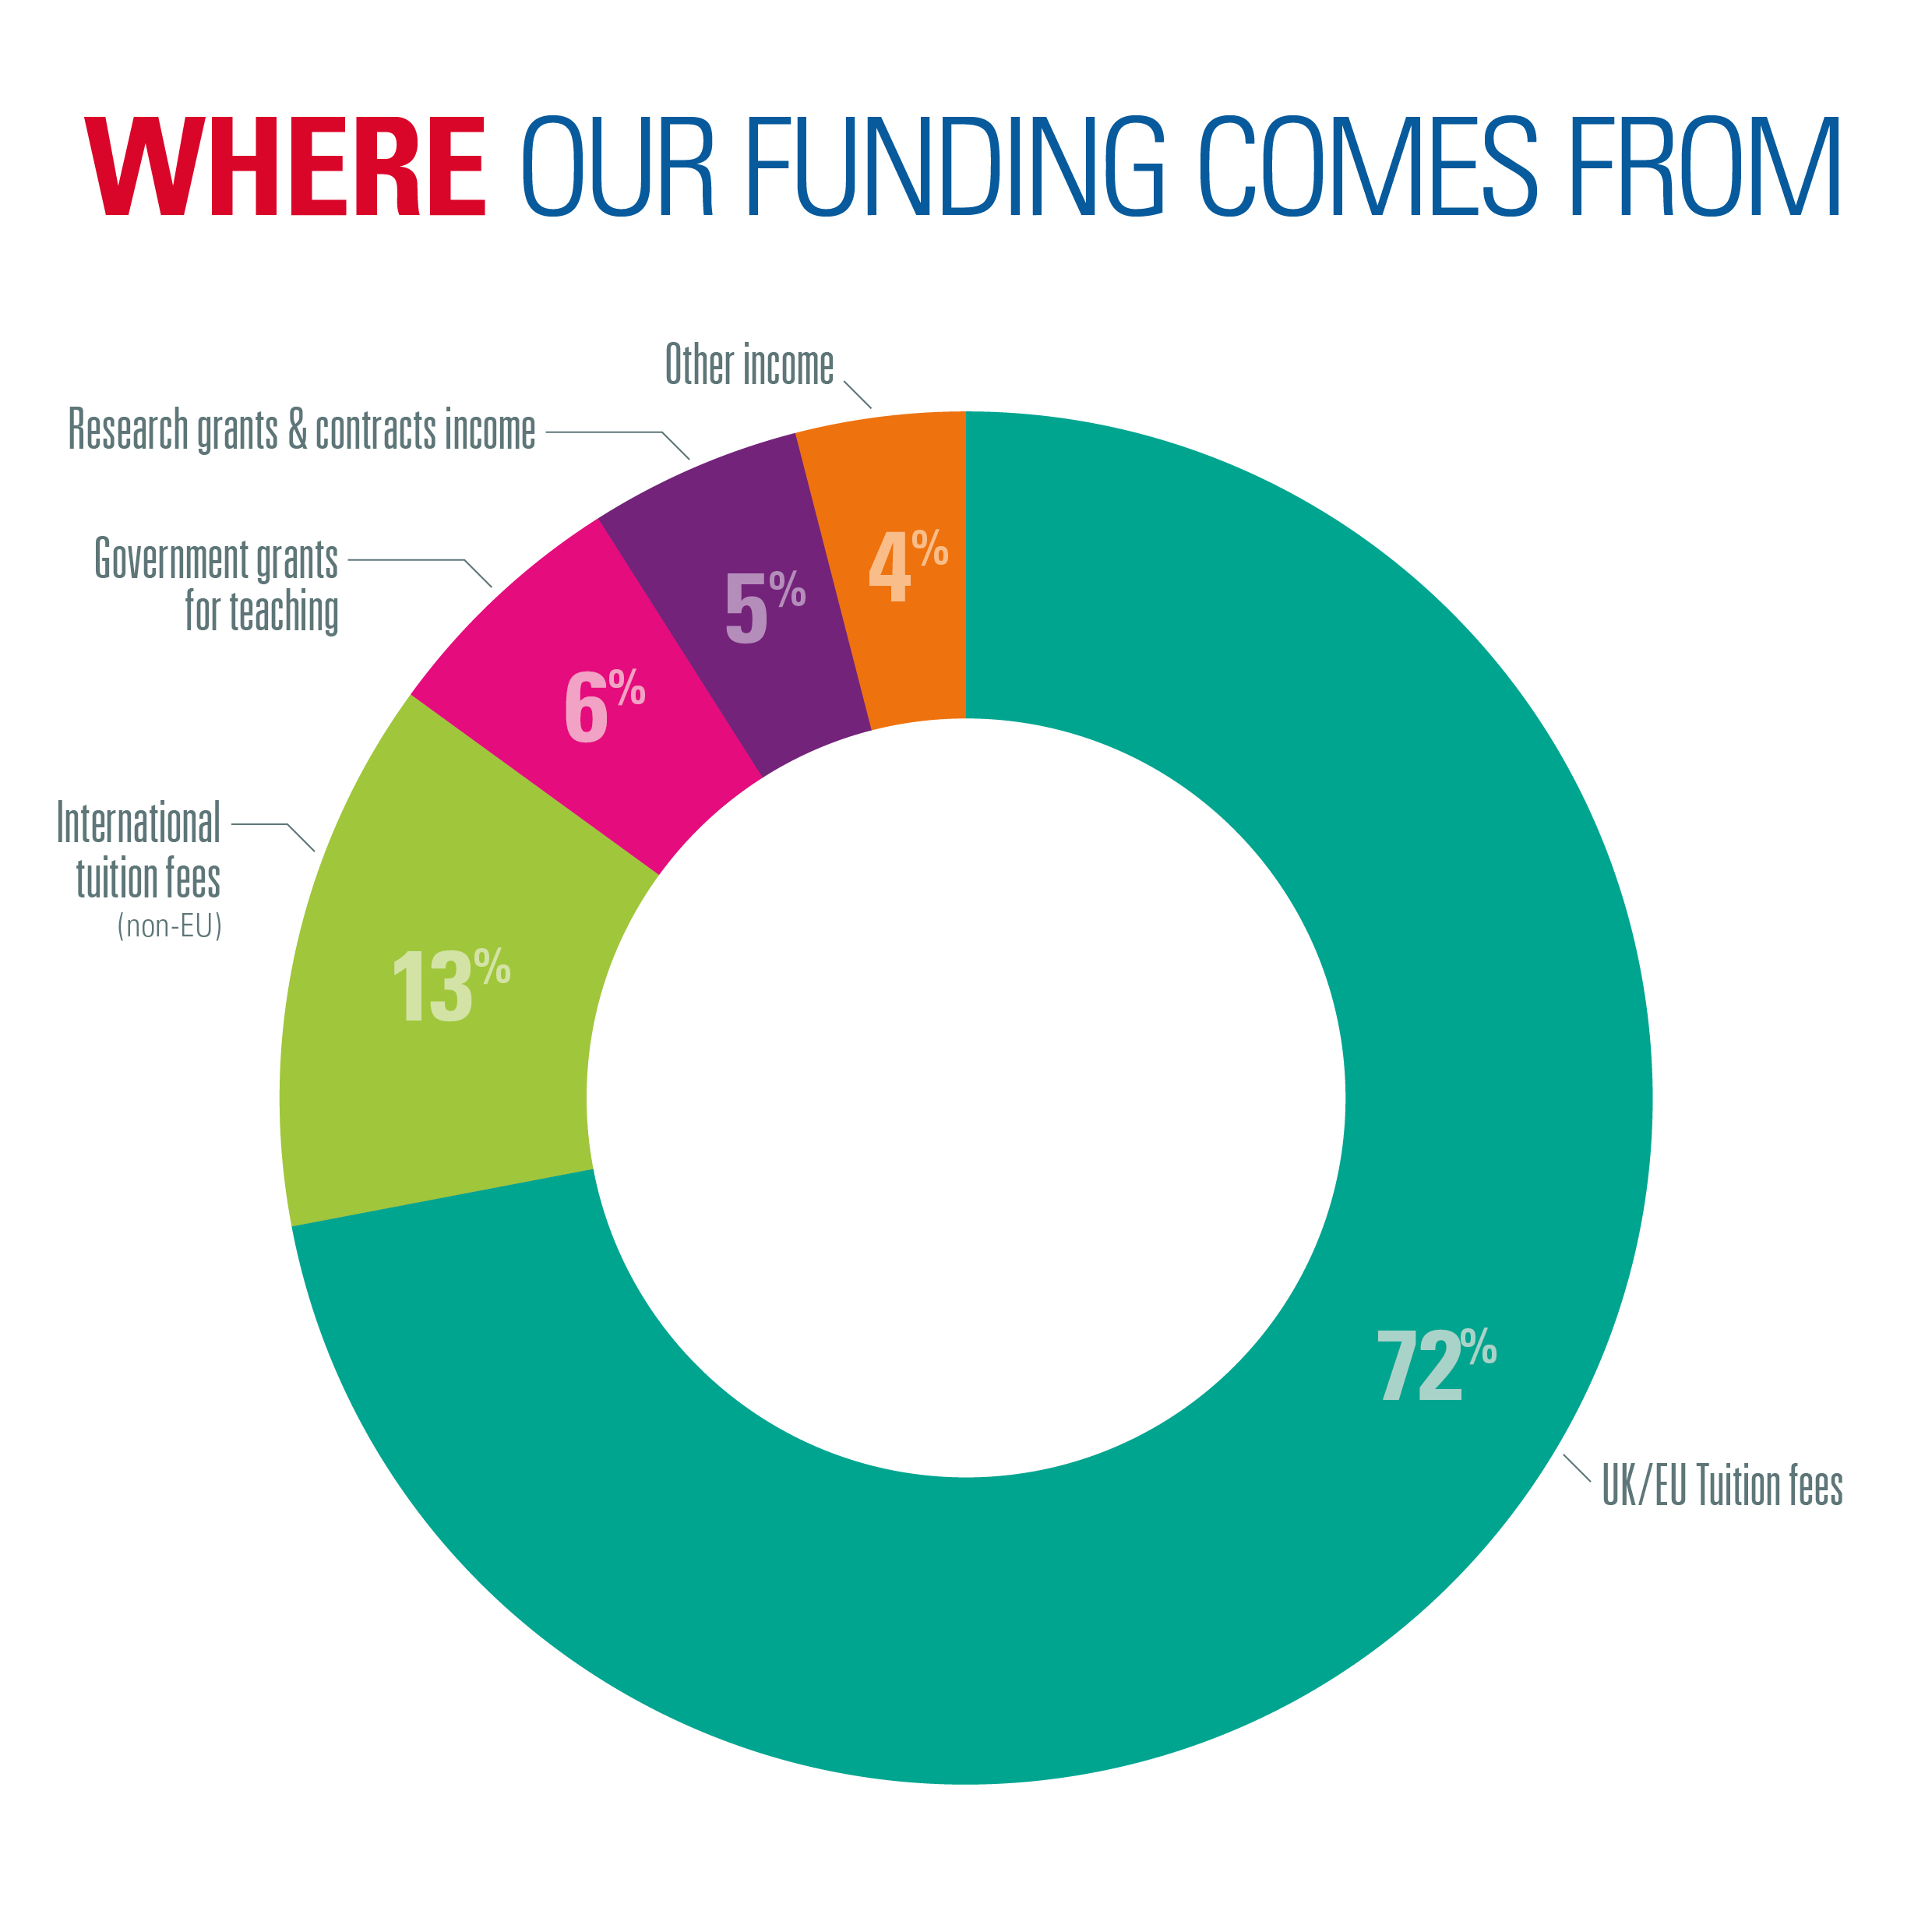 Where our funding comes from